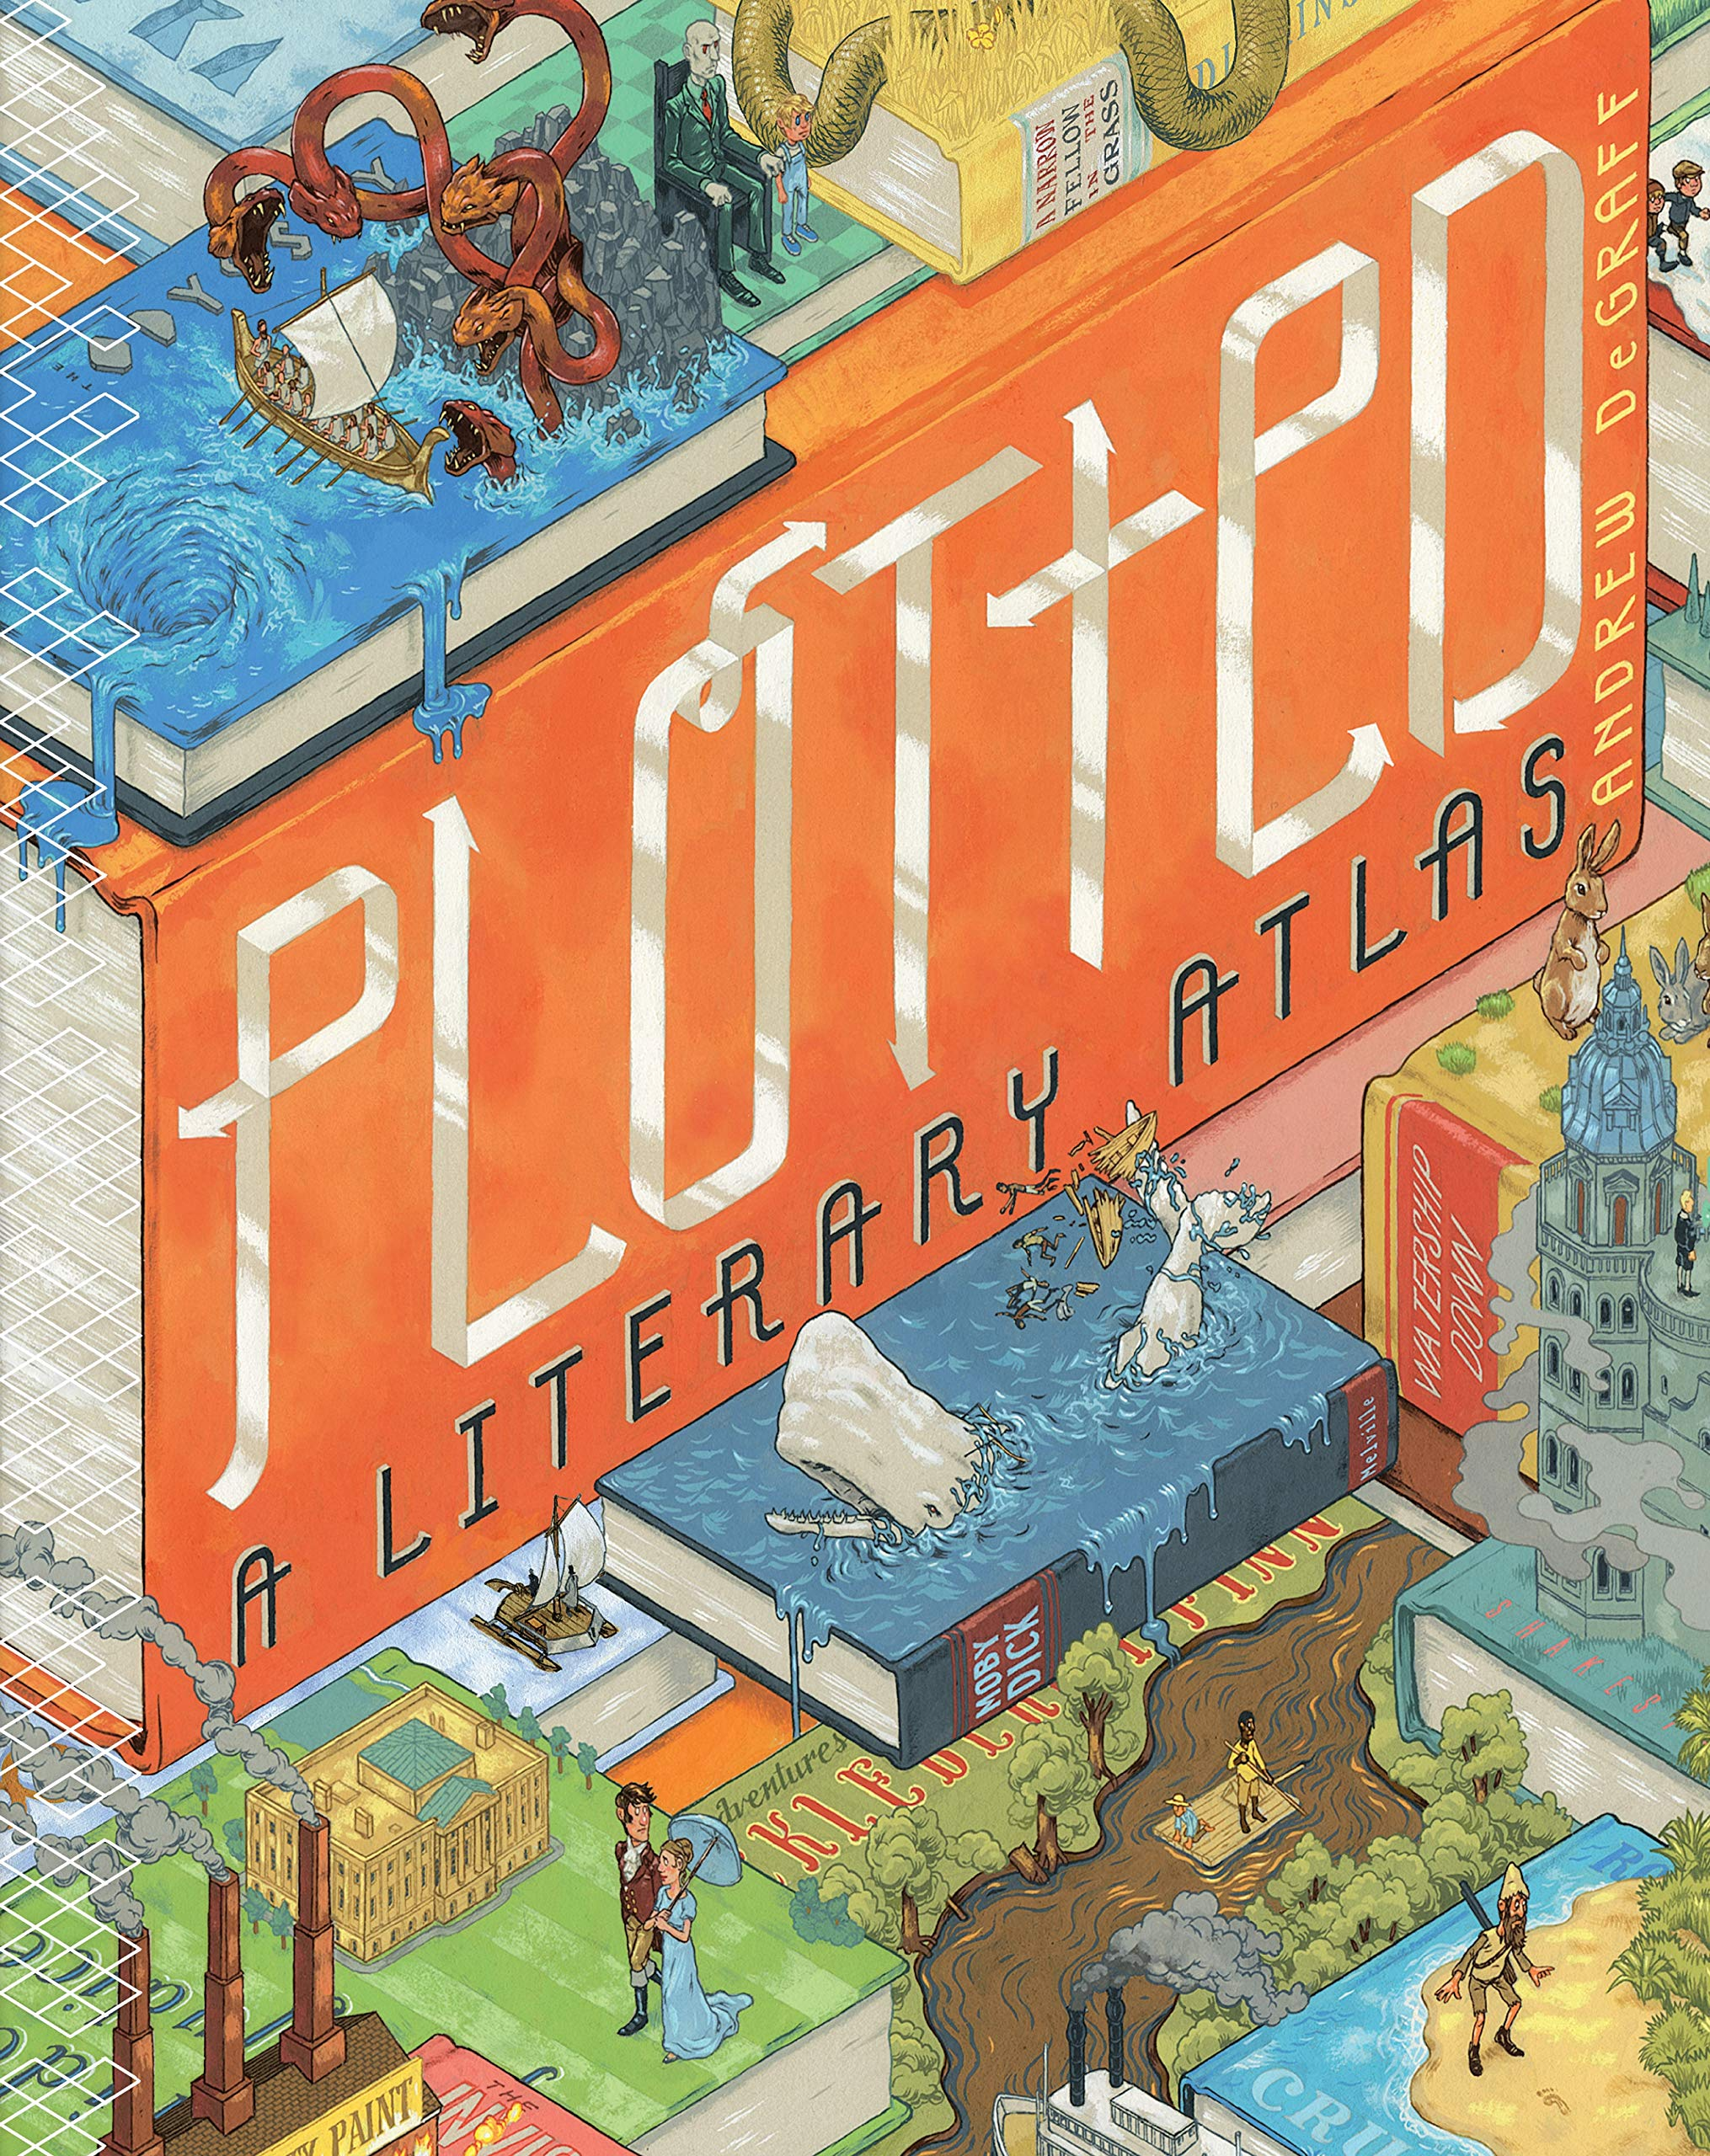 The Best Ipad Apps For Toddlers New Atlas >> Plotted A Literary Atlas Daniel Harmon Andrew Degraff